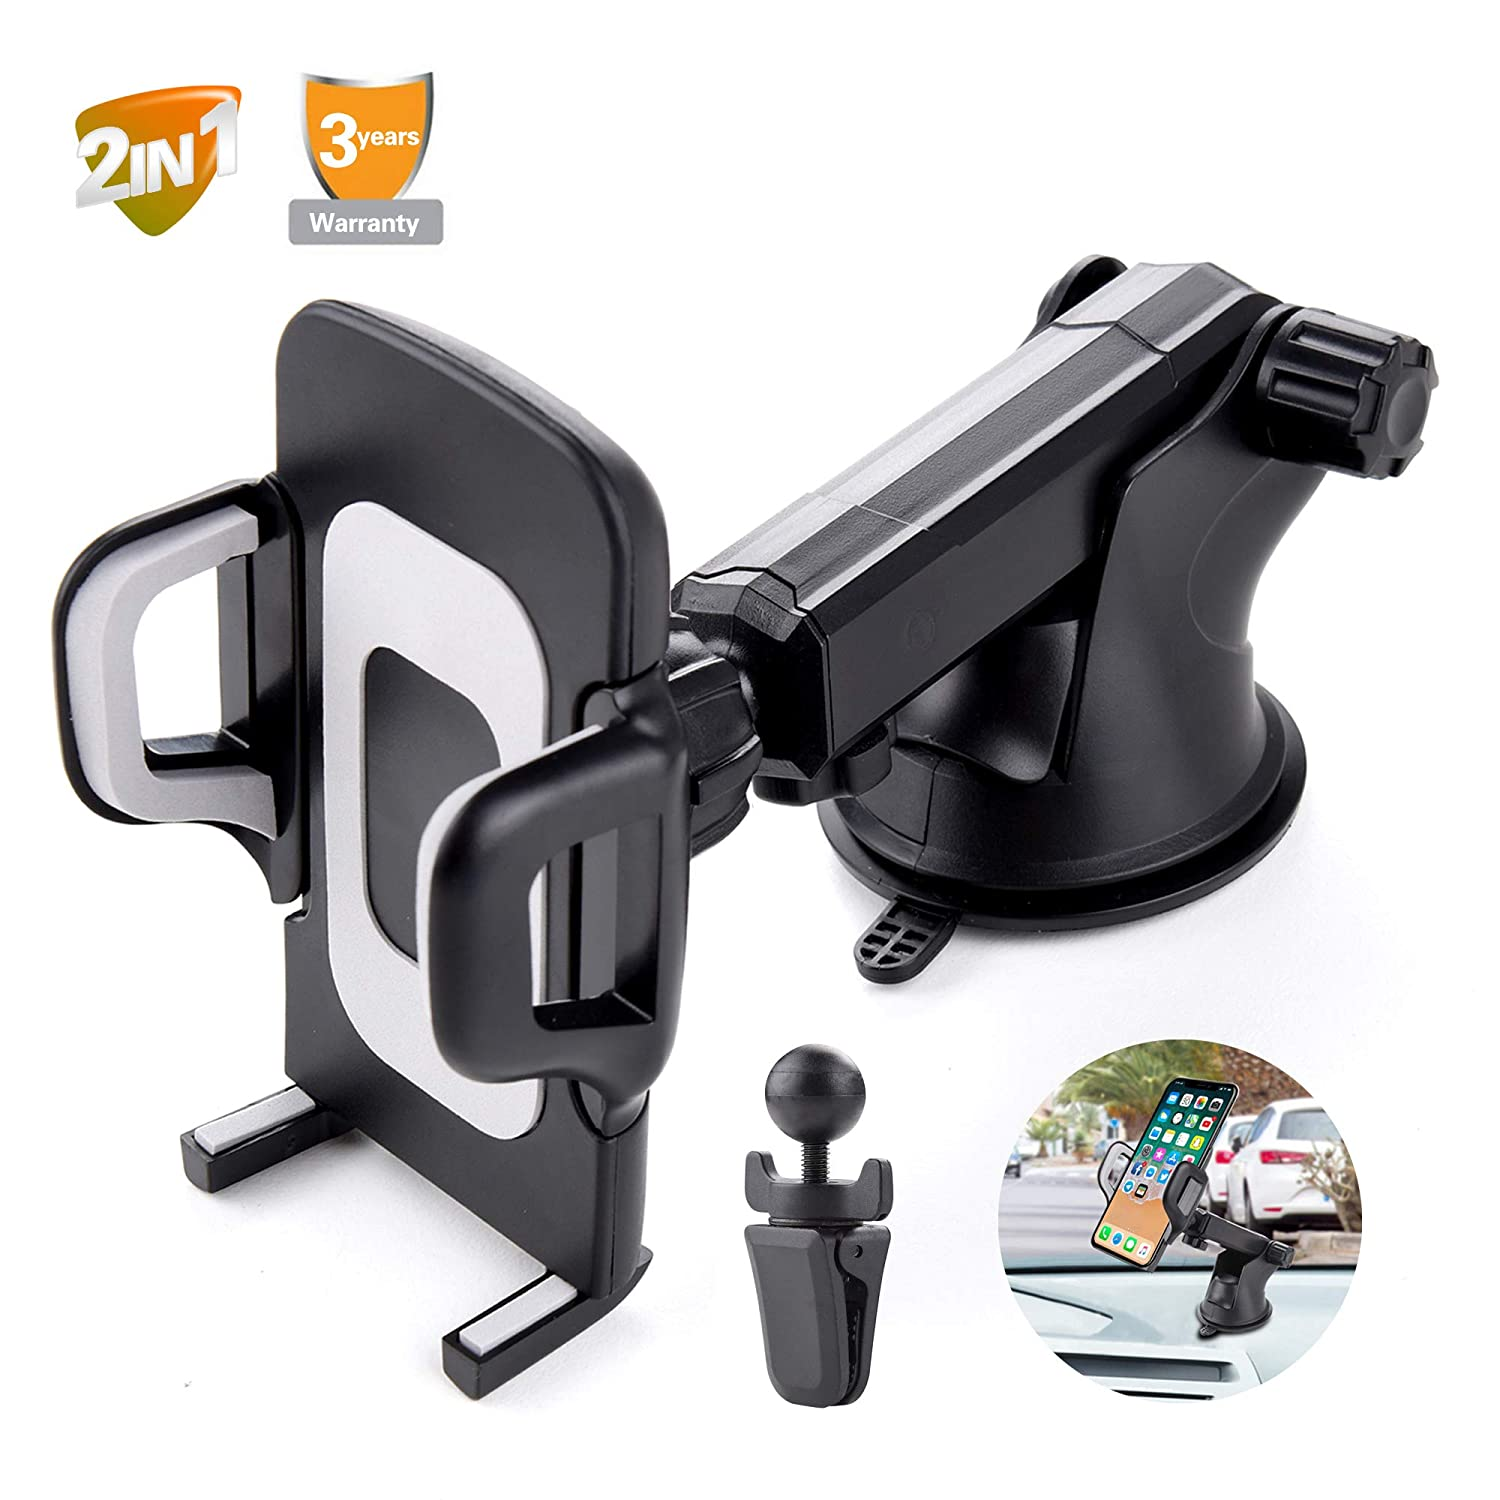 Car Phone Mount Windshield, Dashboard, Air Vent Phone Mount 360¡ãRotation Holder Cell Phone Holder for Car Universal Car Cradles and Mount Compatible for Samsung Glaxy S8 S9, iPhone 6/7/8 Plus etc ¡ ReHuo Dashboard_Car_Phone_Mount